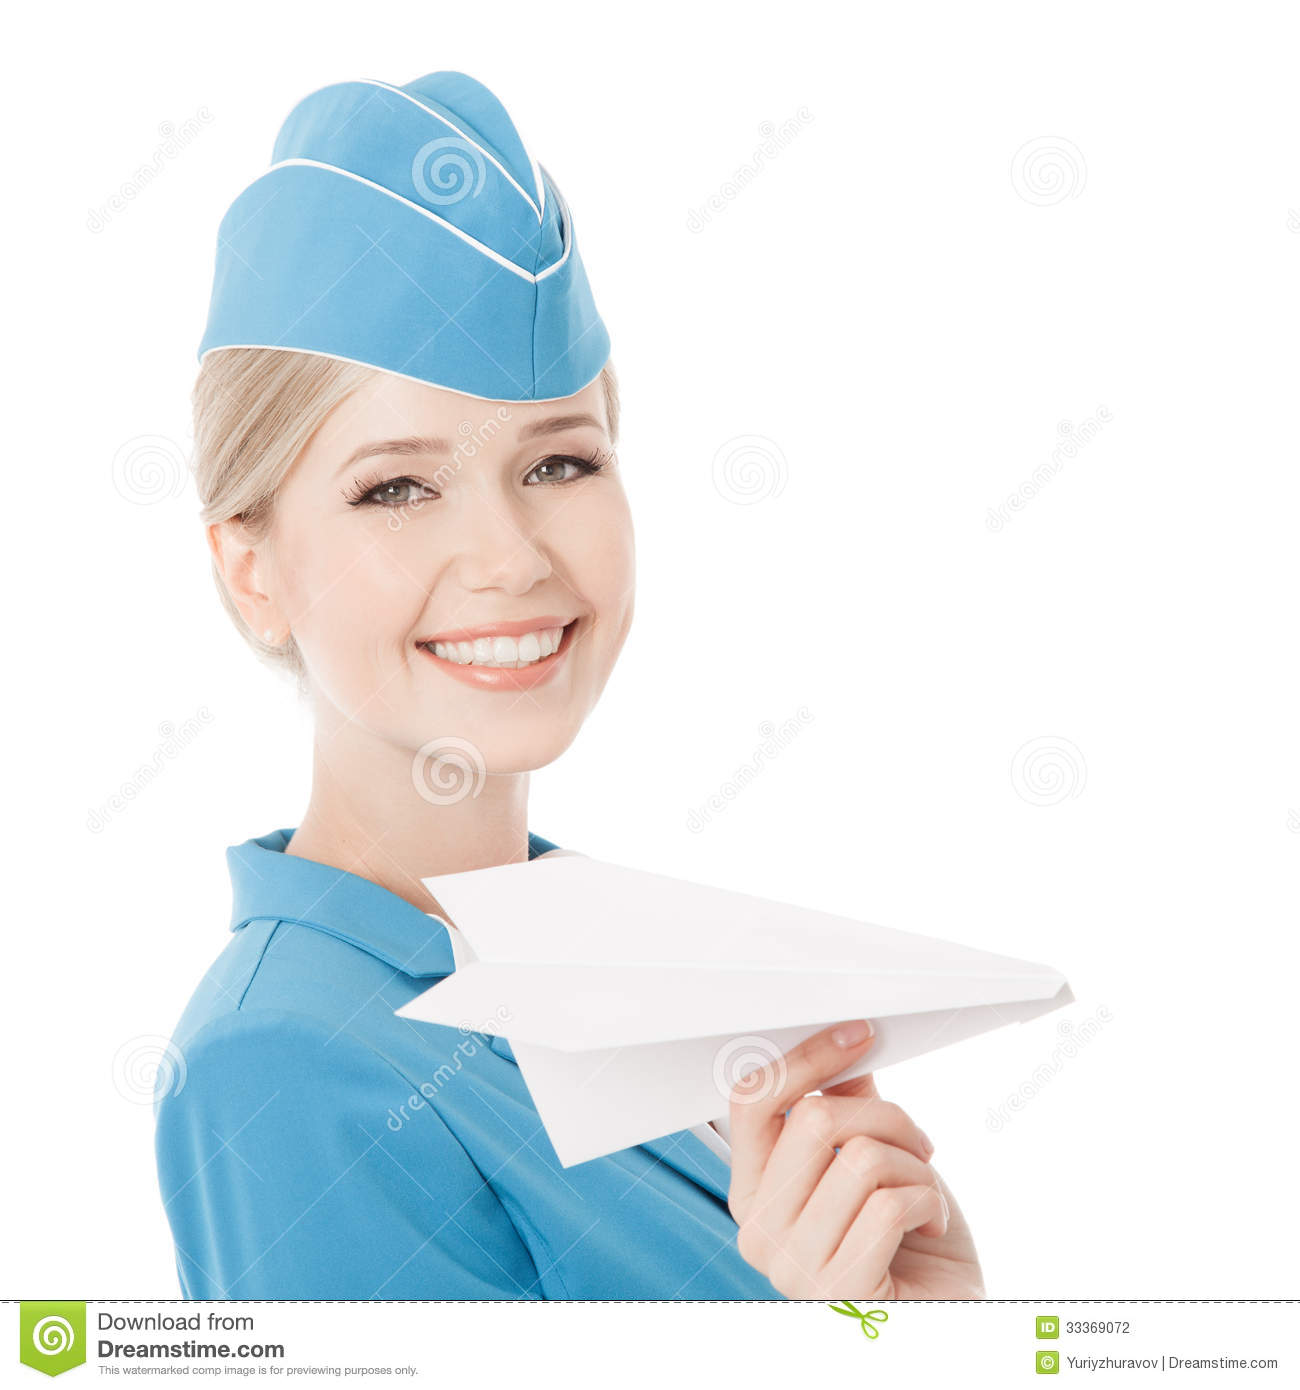 essay on air hostess Check out our top free essays on air hostess to help you write your own essay.